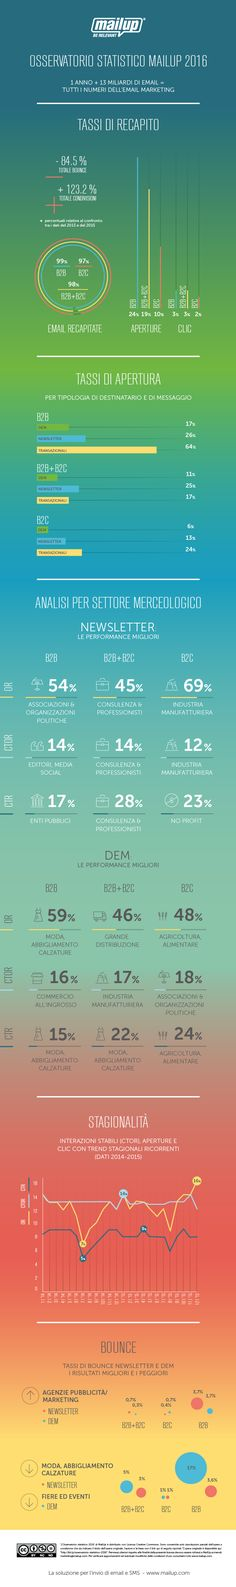 Infografica email marketing 2016 - Email Marketing: Invio e Gestione Newsletter | MailUp